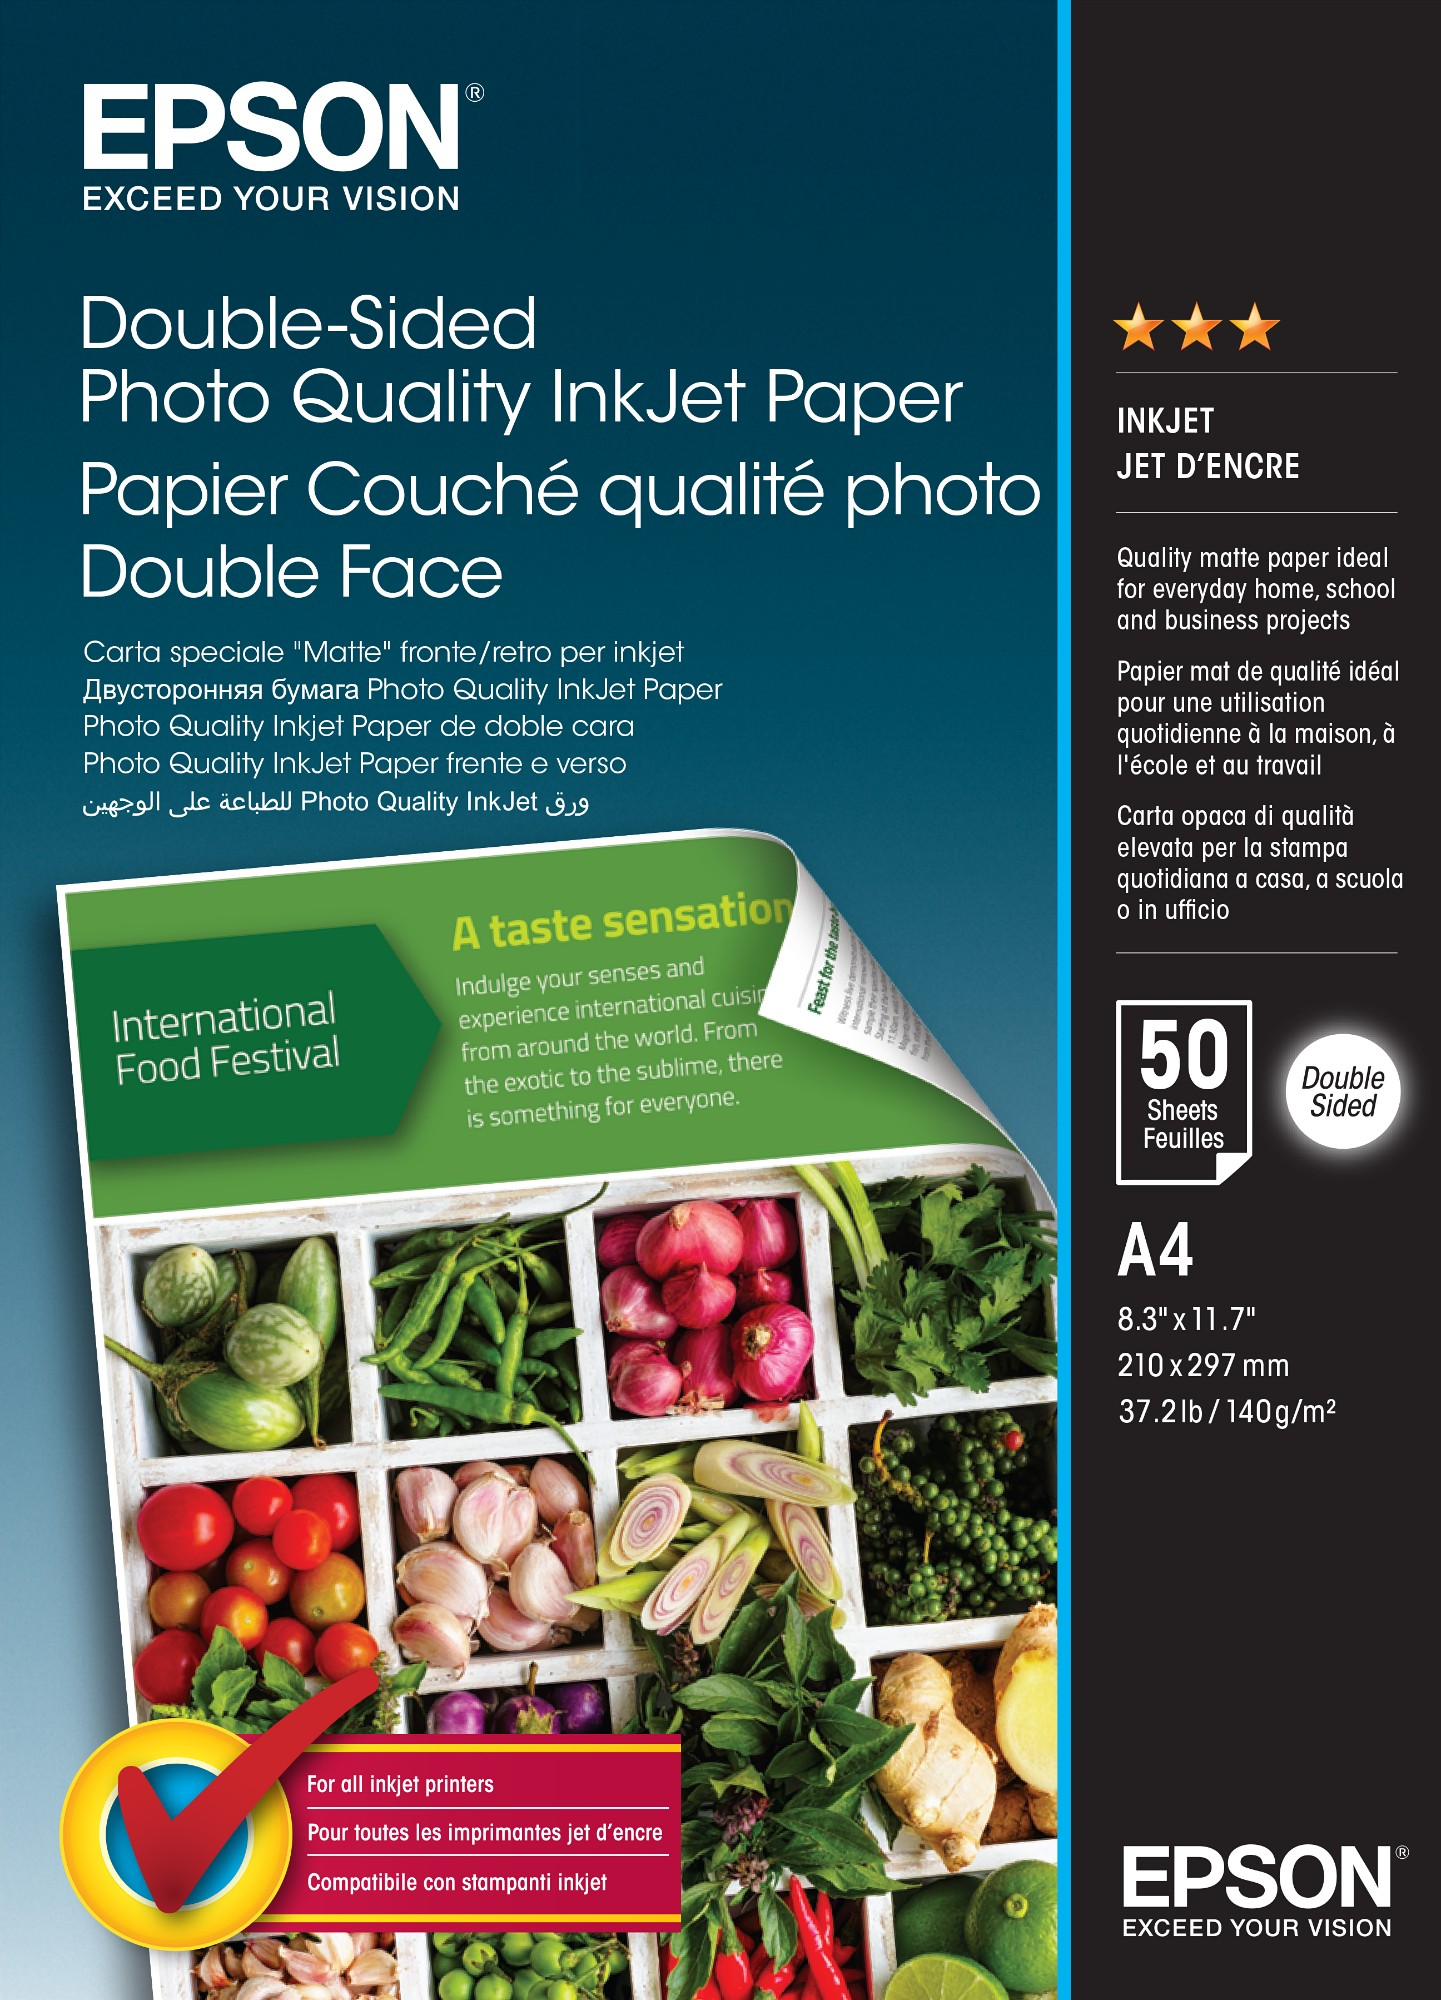 Epson Double-Sided Photo Quality Inkjet Paper - A4 - 50 Sheets